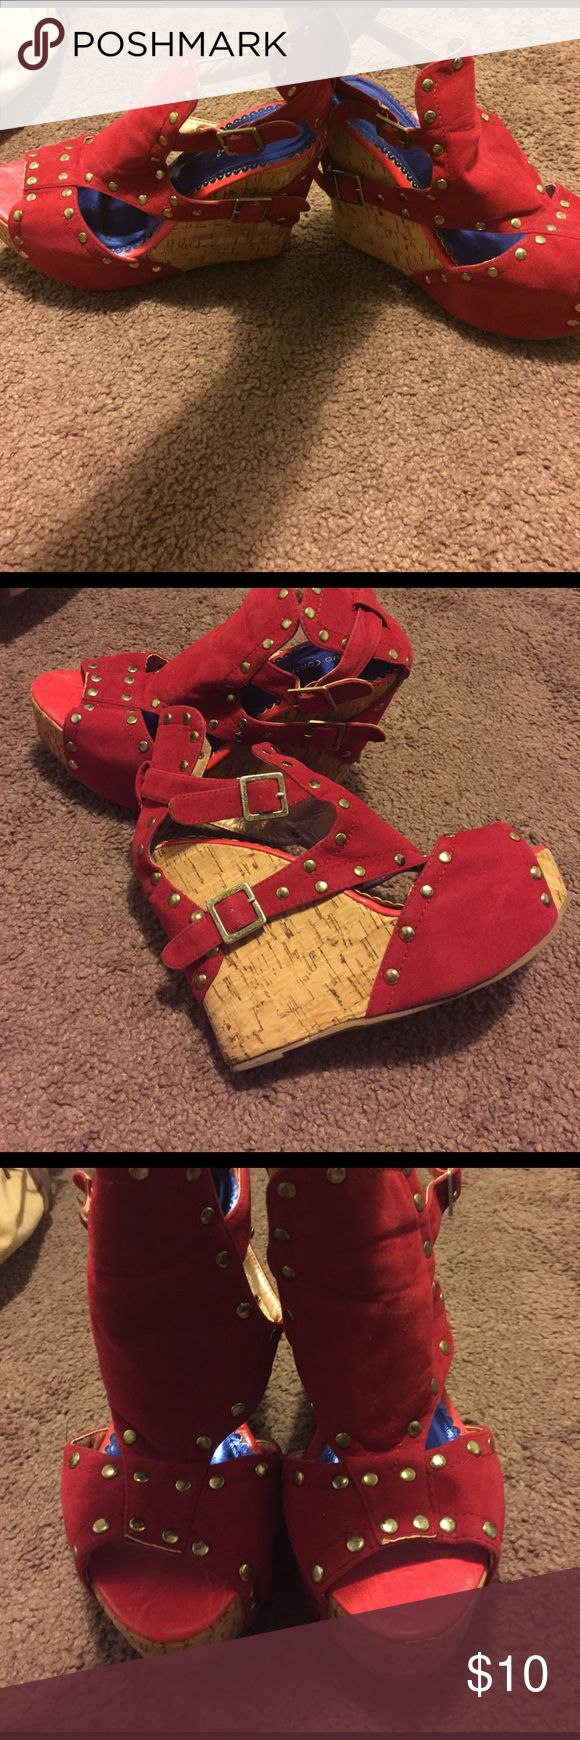 Wedge heel Red wedge shoe with a gold studs on them Shoes Wedges